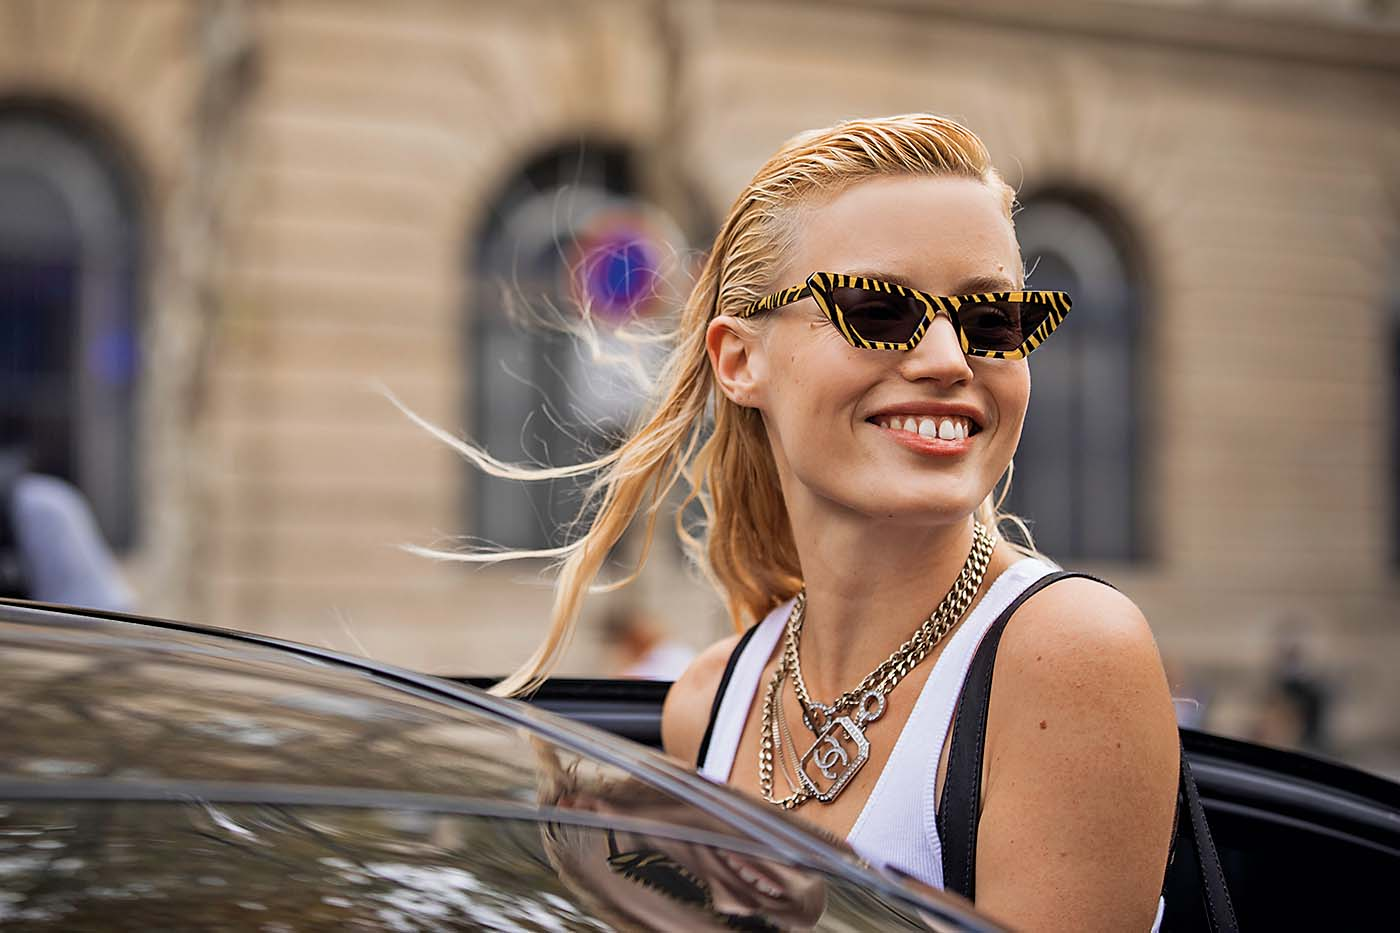 PARIS, FRANCE - SEPTEMBER 28:  Georgia May Jagger, wearing tiger print sunglasses, Chanel necklace, white top and black mini skirt, is seen after the Balmain show on September 28, 2018 in Paris, France. (Photo by Claudio Lavenia/Getty Images)